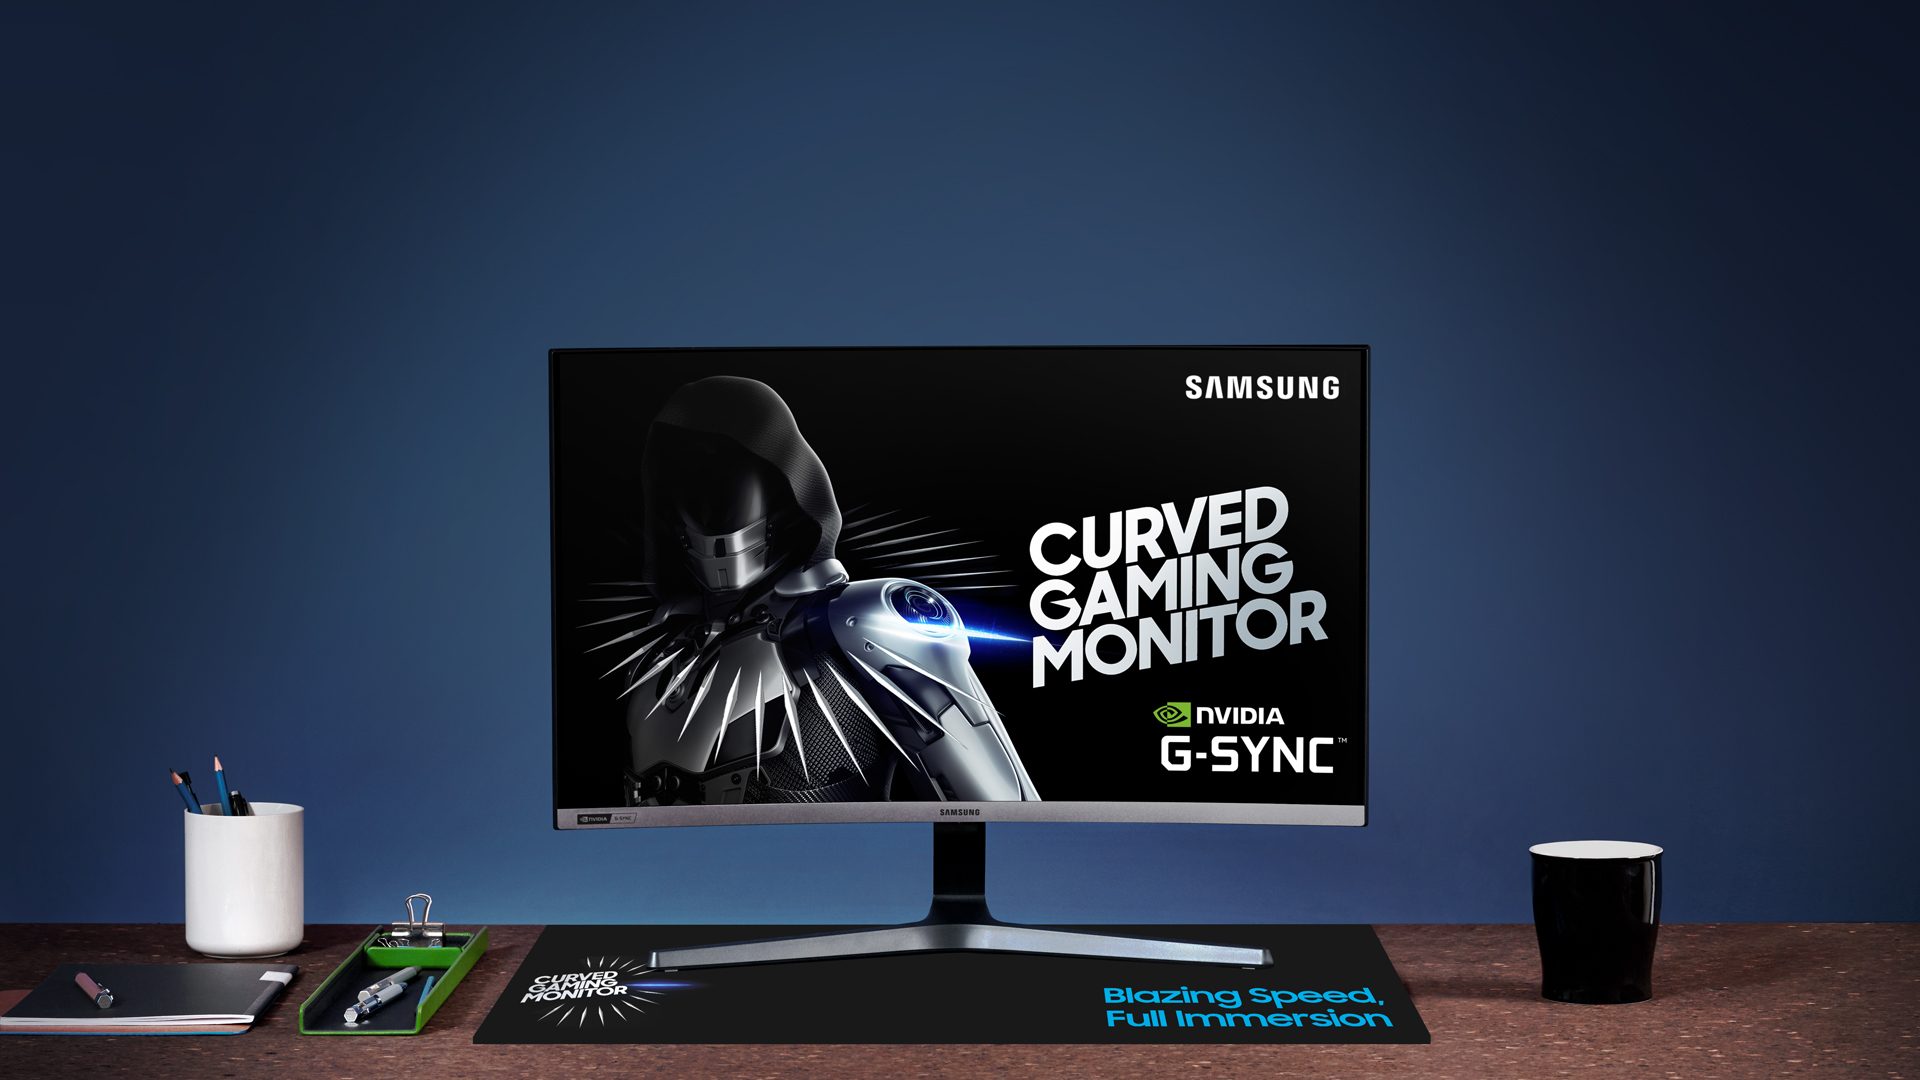 Samsung introduces 240Hz G-Sync compatible curved gaming monitor